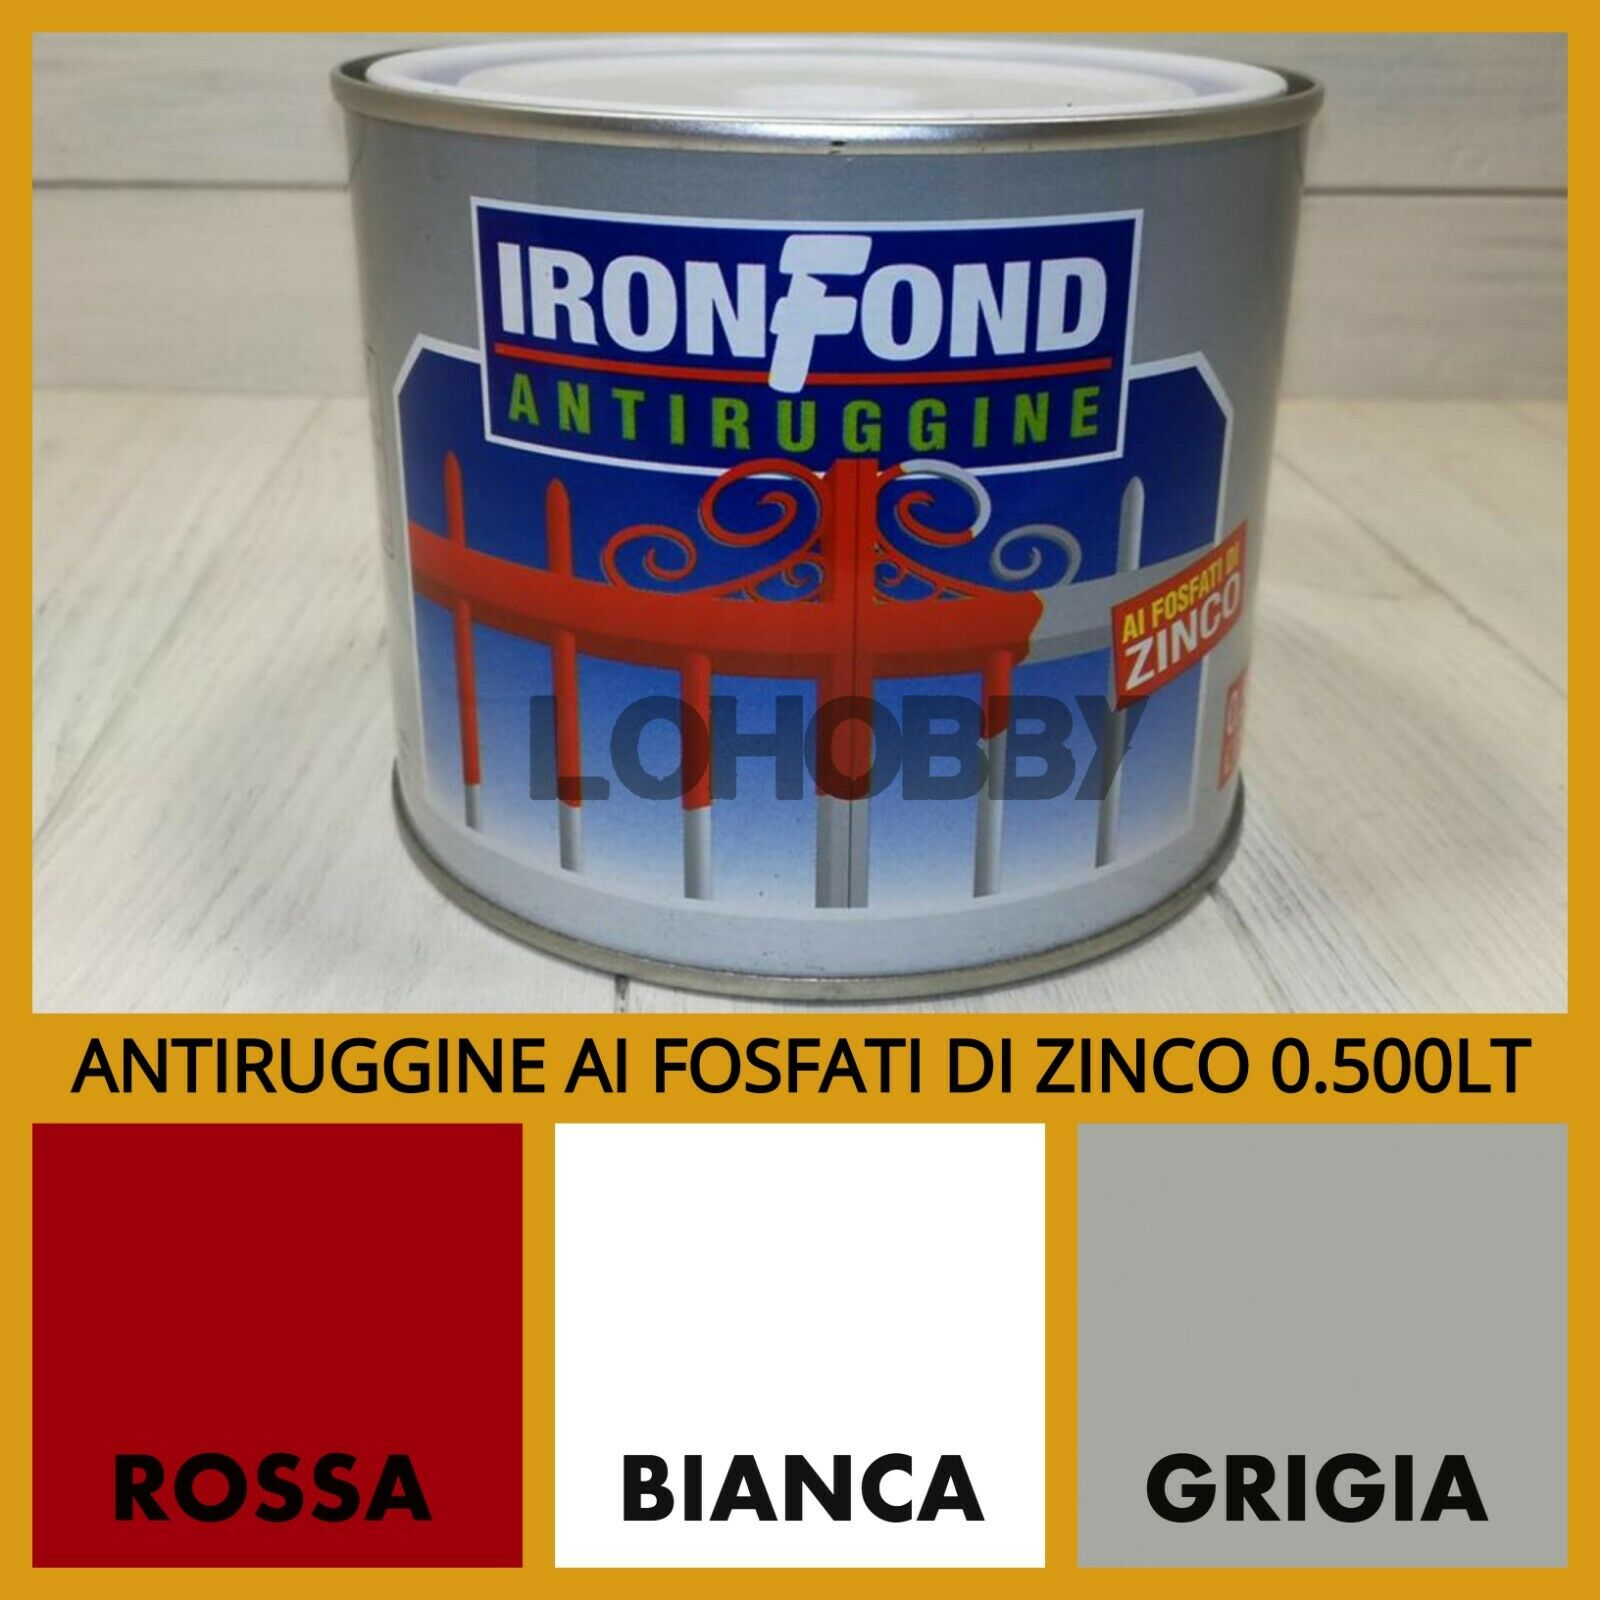 Smalto antiruggine per ferro vernice pittura anti ruggine bianca rossa grigia